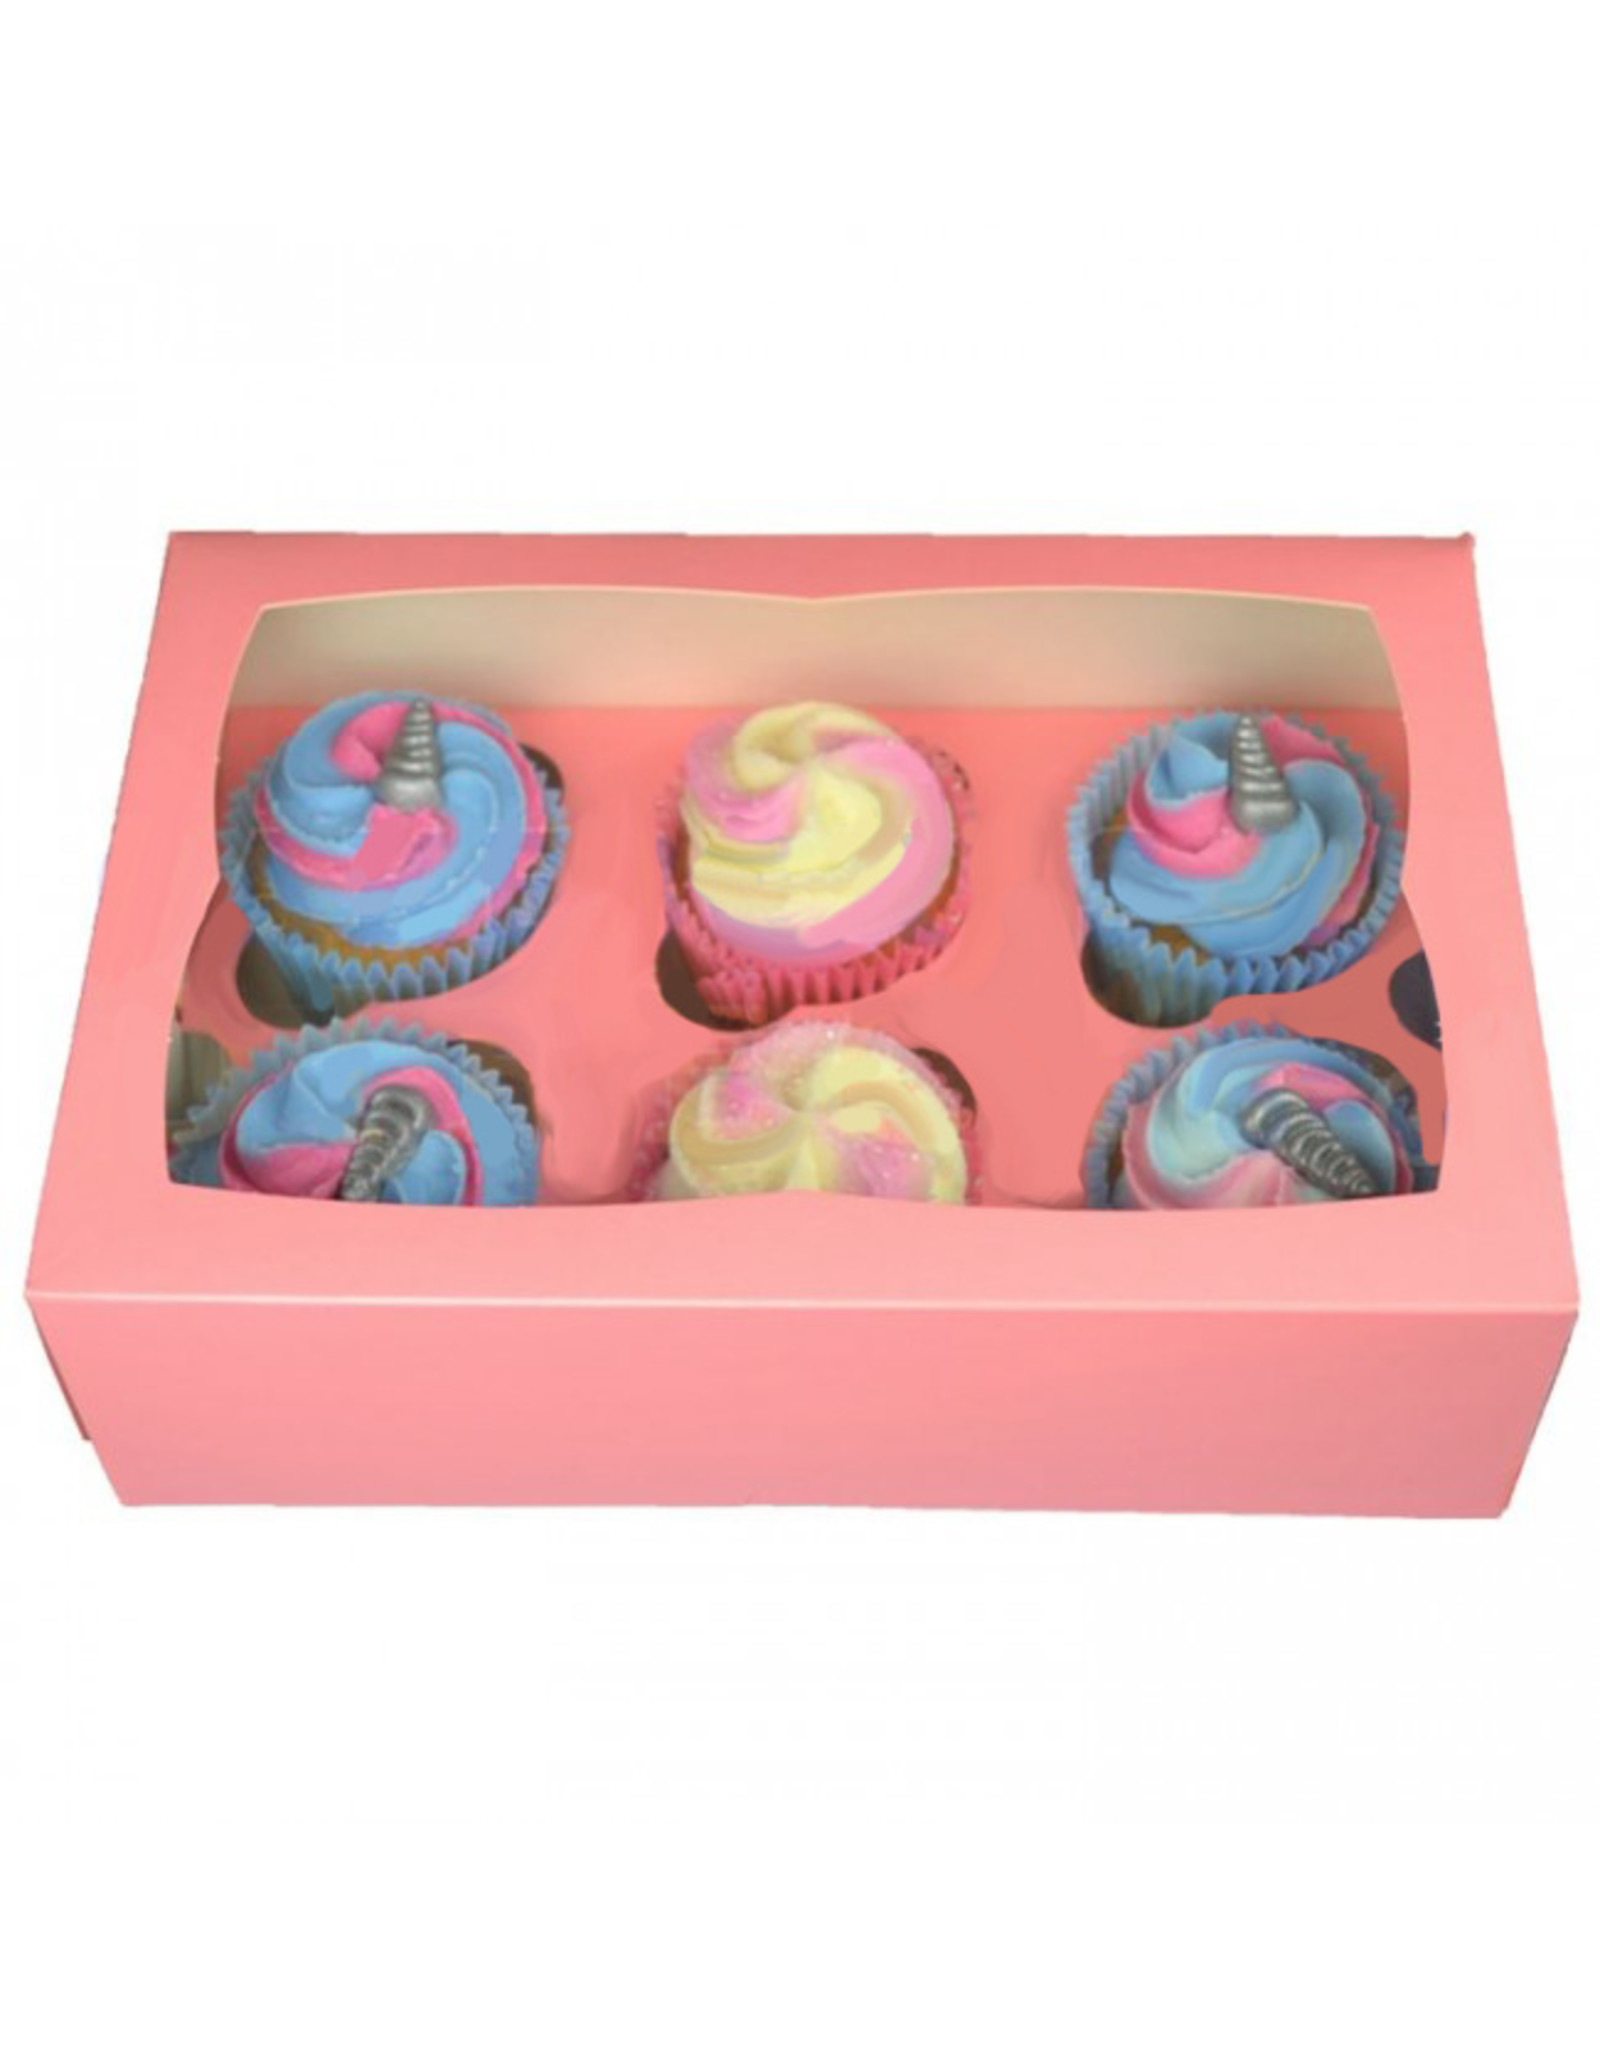 Pink box for 6 cupcakes (25 pieces)